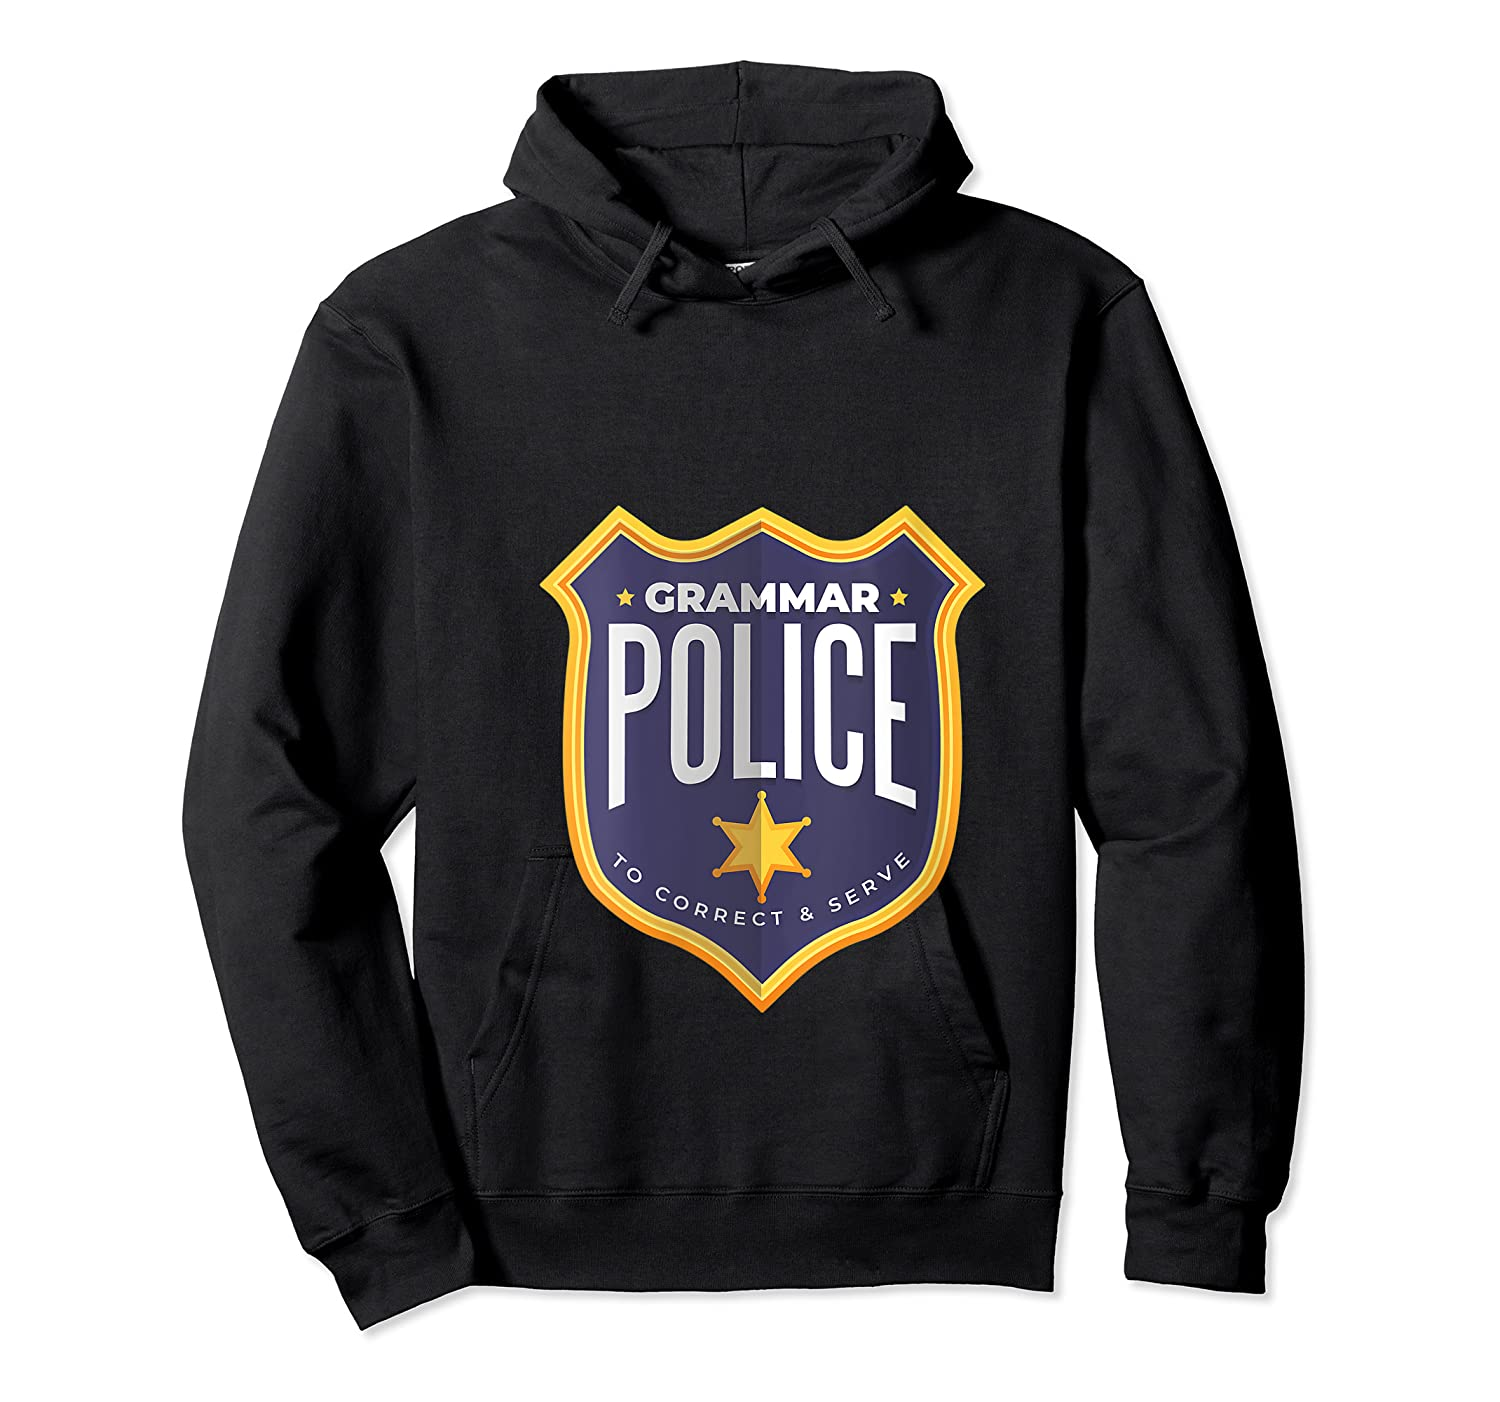 Grammar Police To Correct And Serve Shield Badge T Shirt Unisex Pullover Hoodie